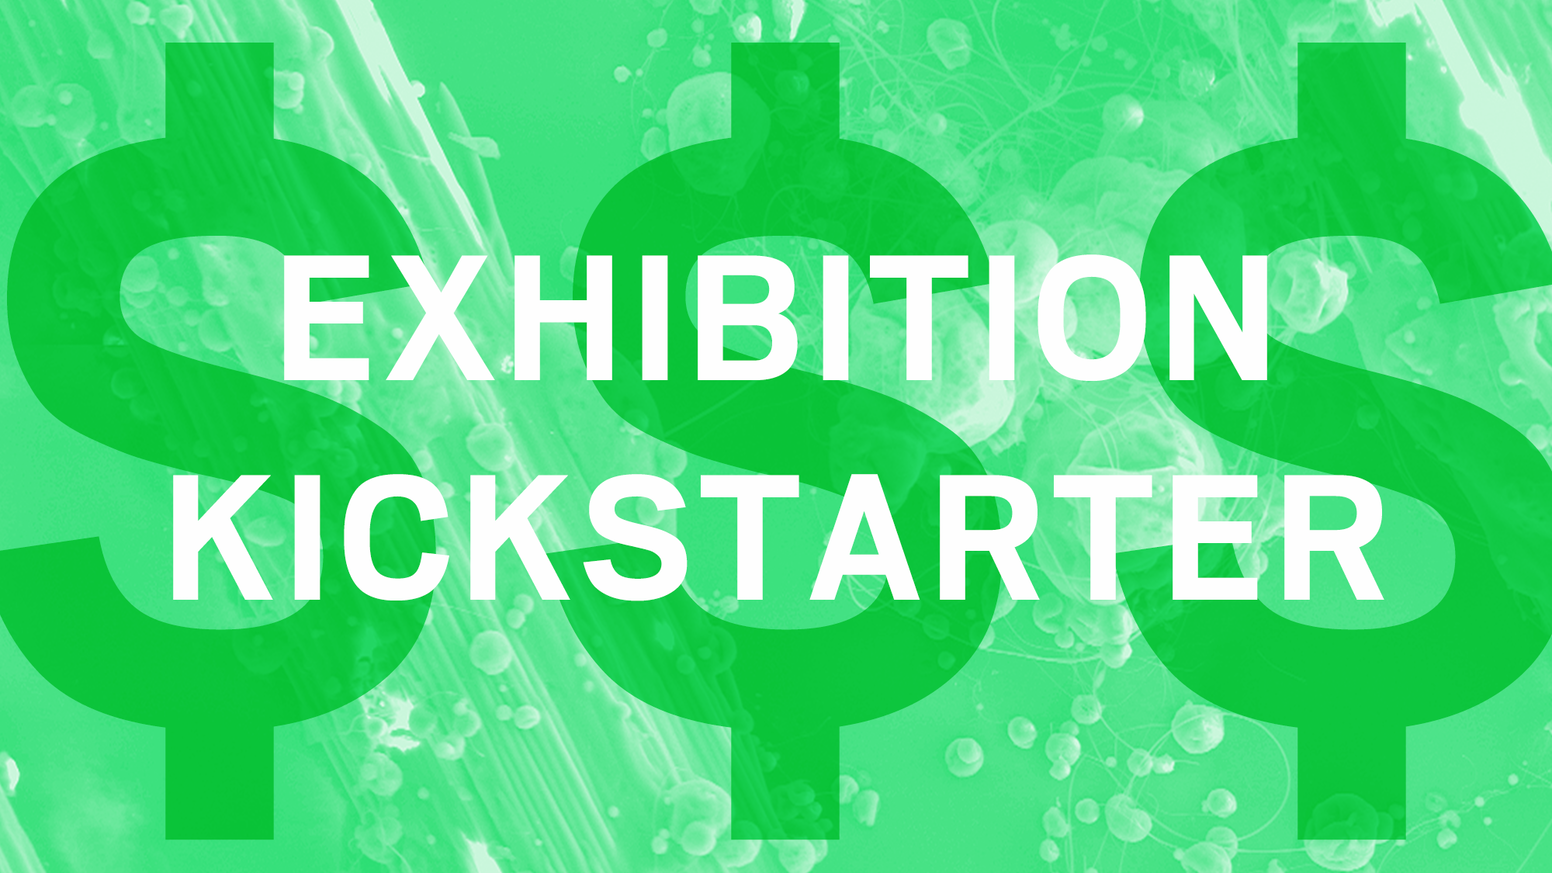 This is not a Kickstarter. This is an exhibition. A limited edition custom collection of art objects created online.